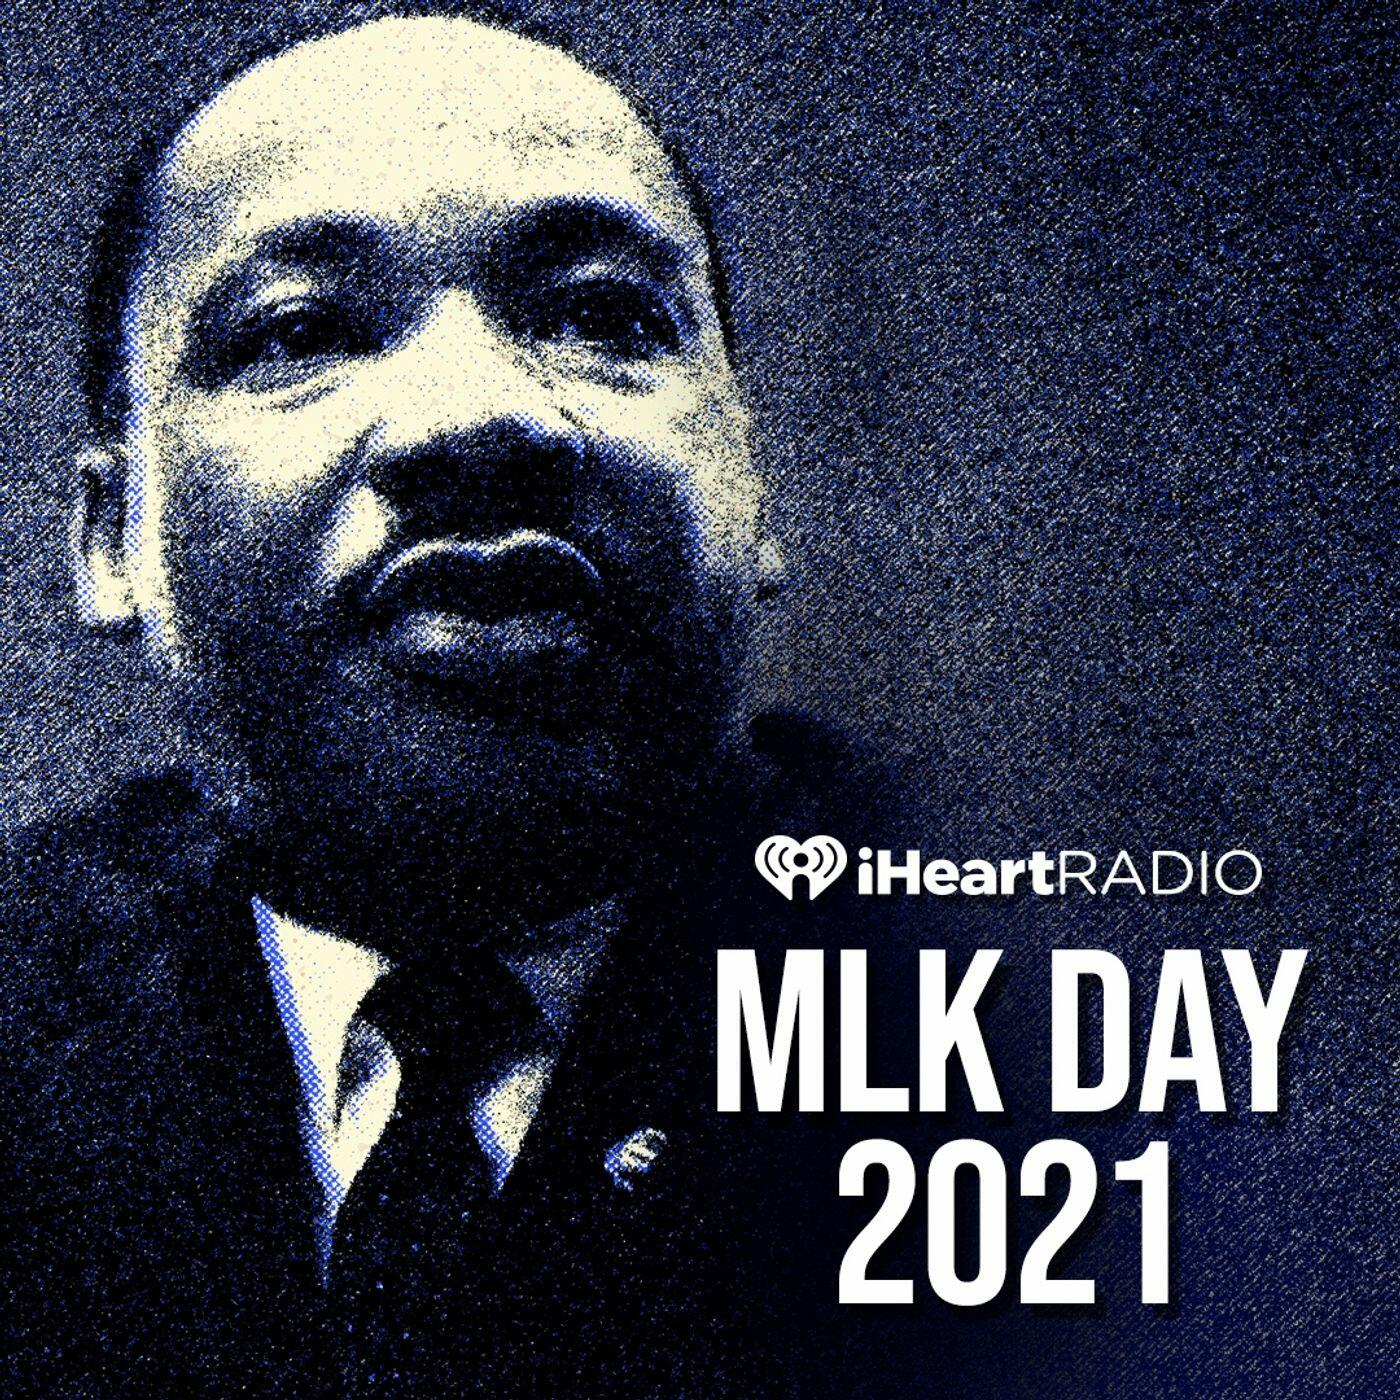 MLK Day 2021 Podcasts